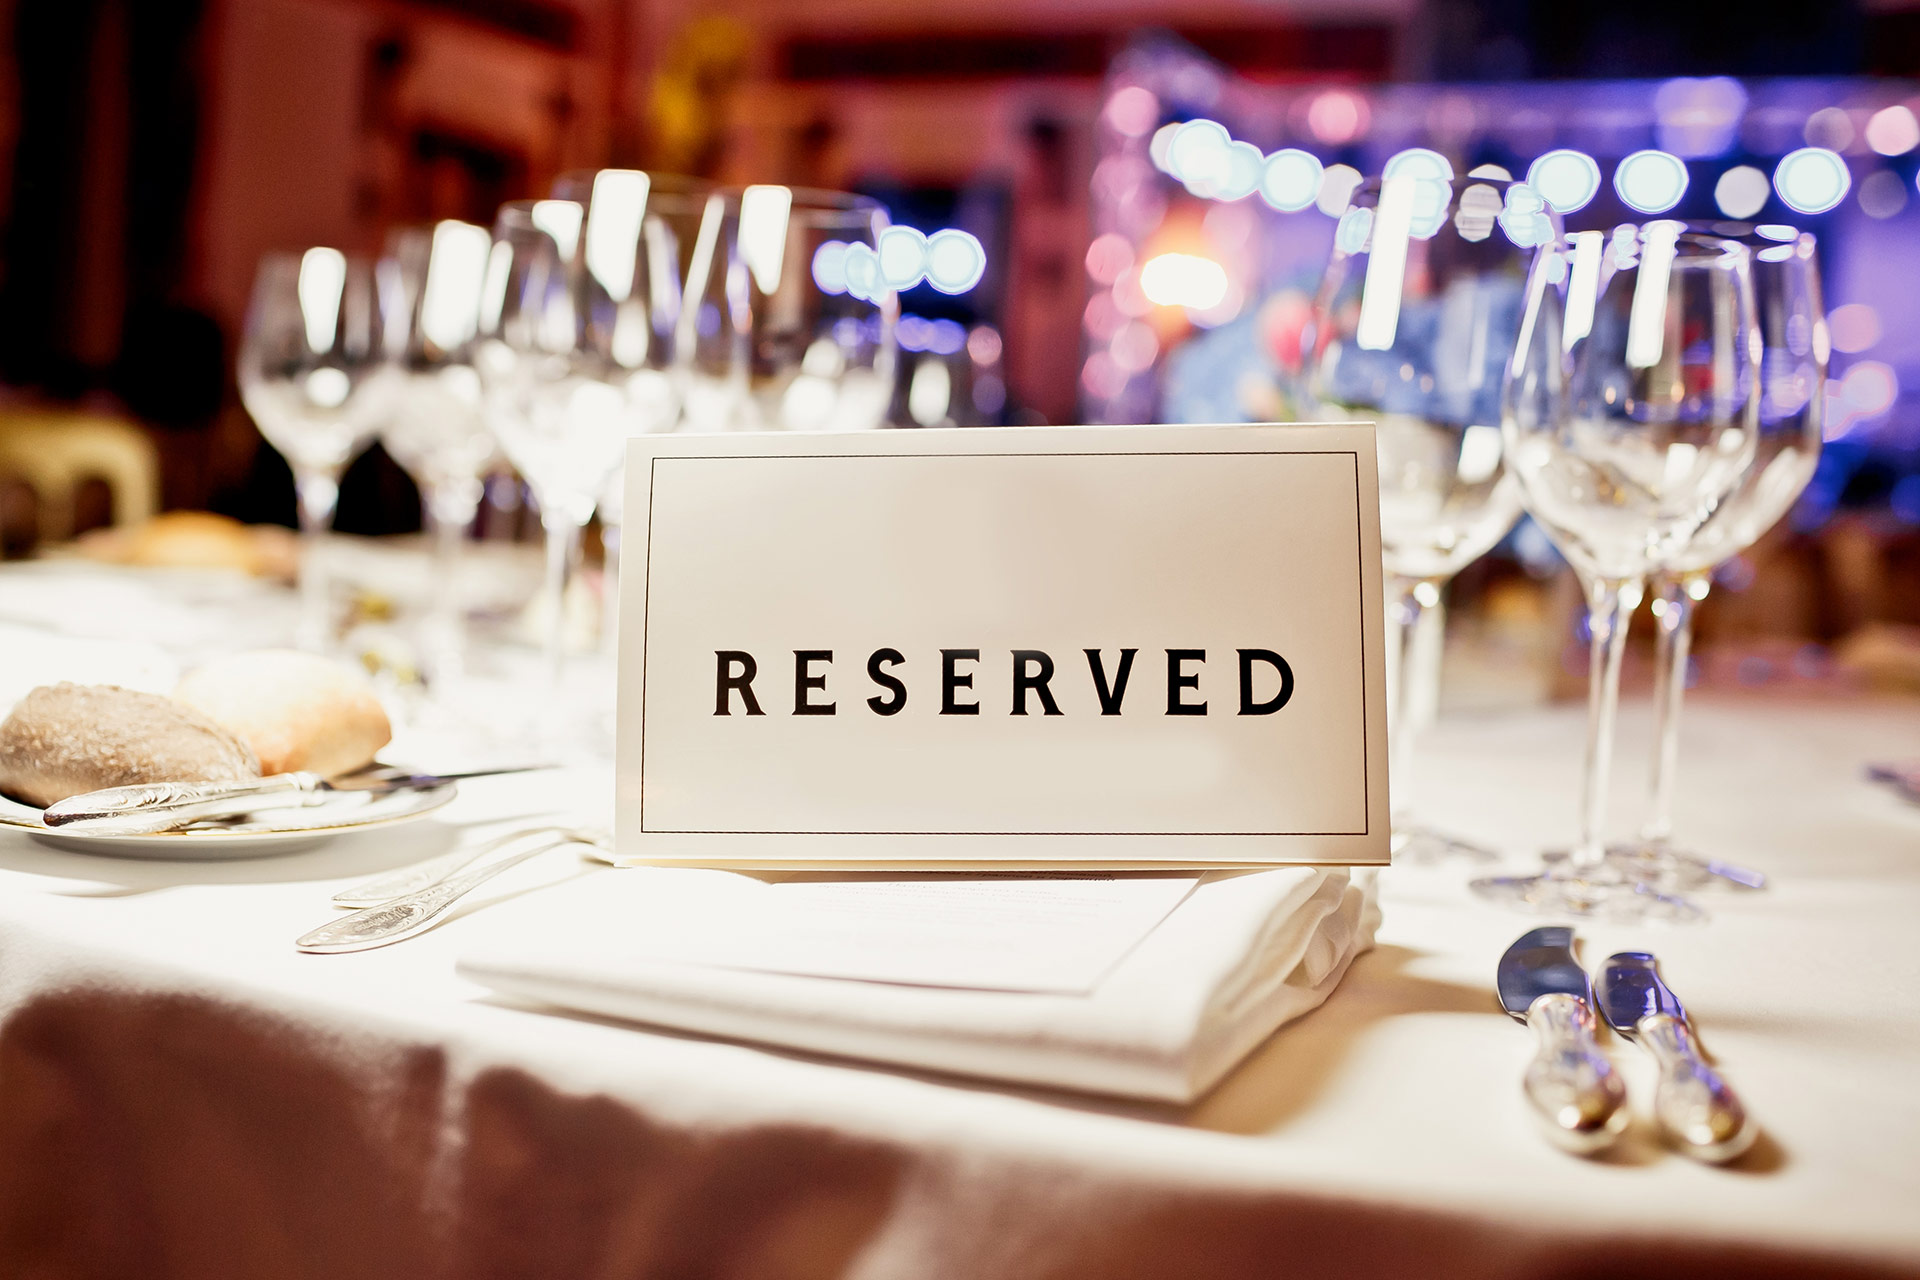 Host your Rehersal Dinner at Stone Summit